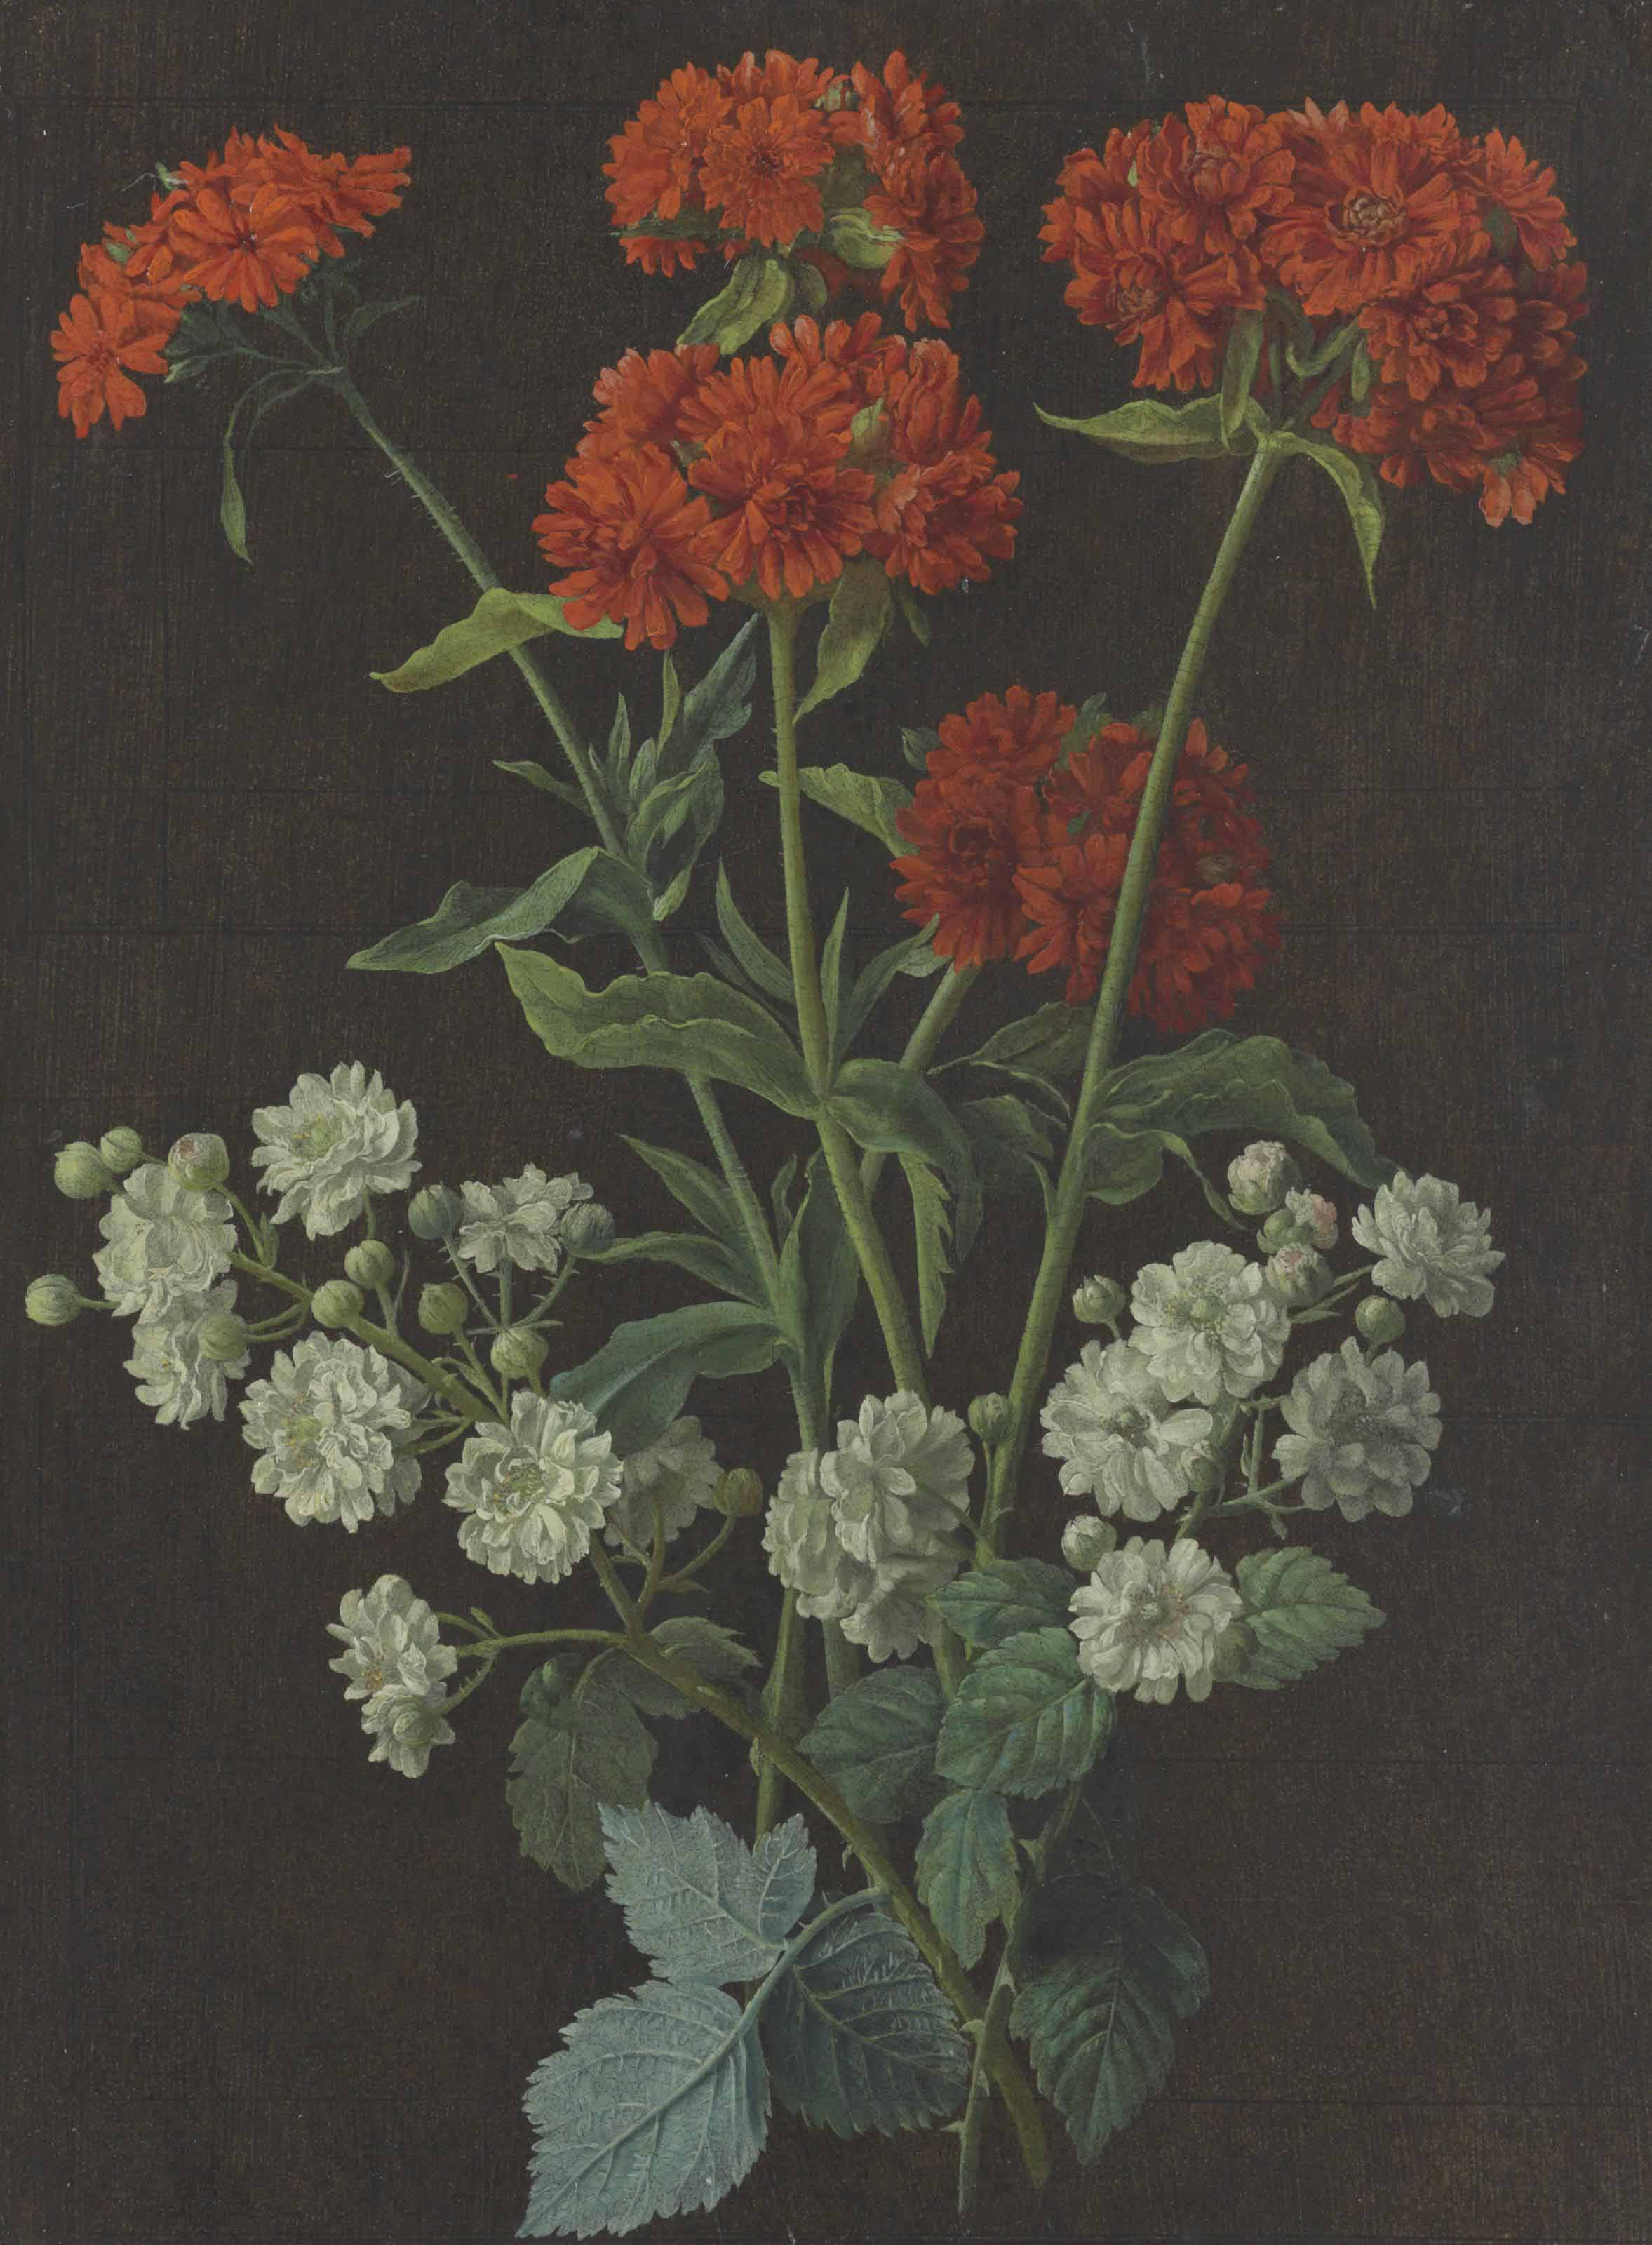 Still life with a spray of red verbena and white roses